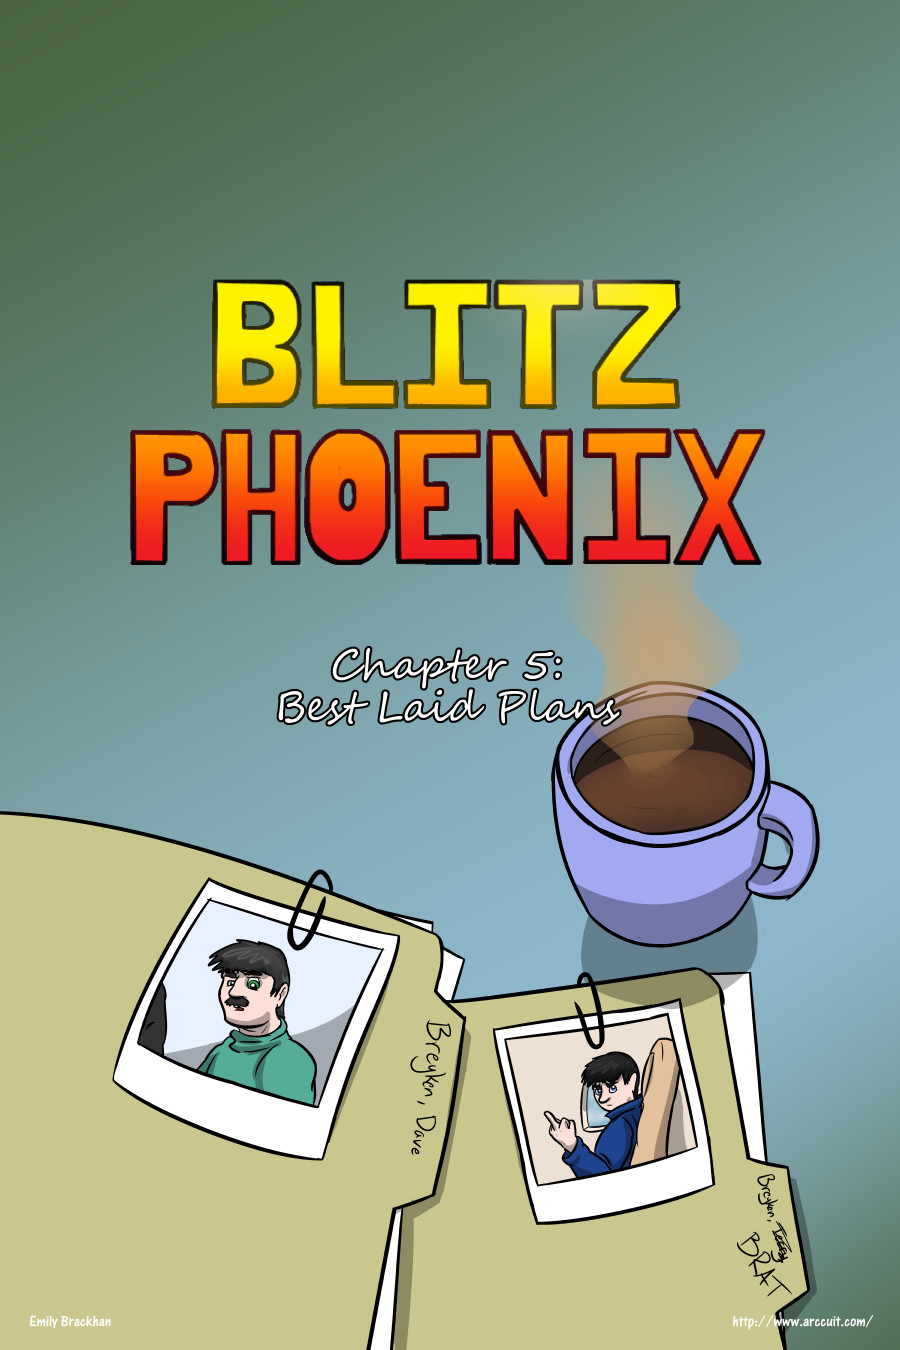 Blitz Phoenix: Chapter 5 - Best Laid Plans